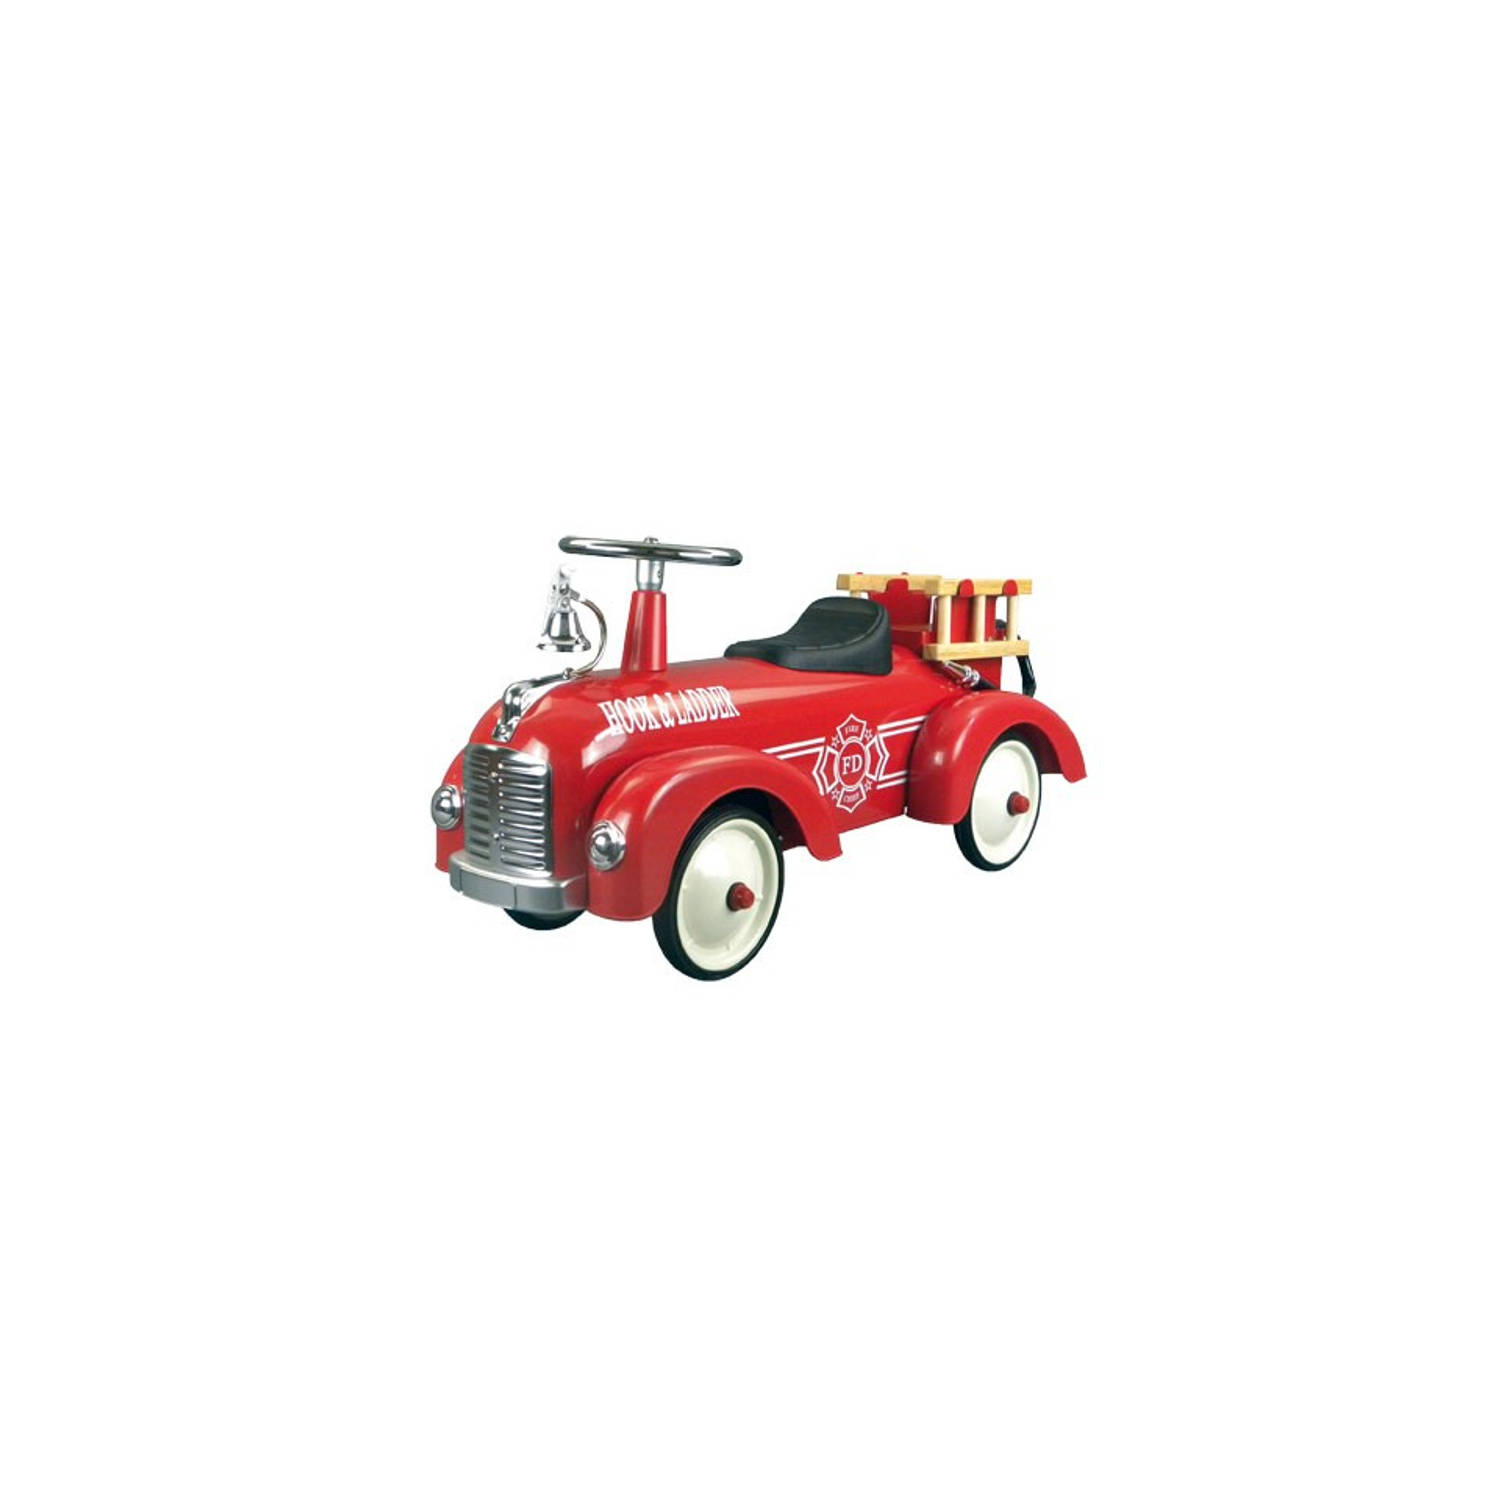 Retro Roller Sam Loopauto